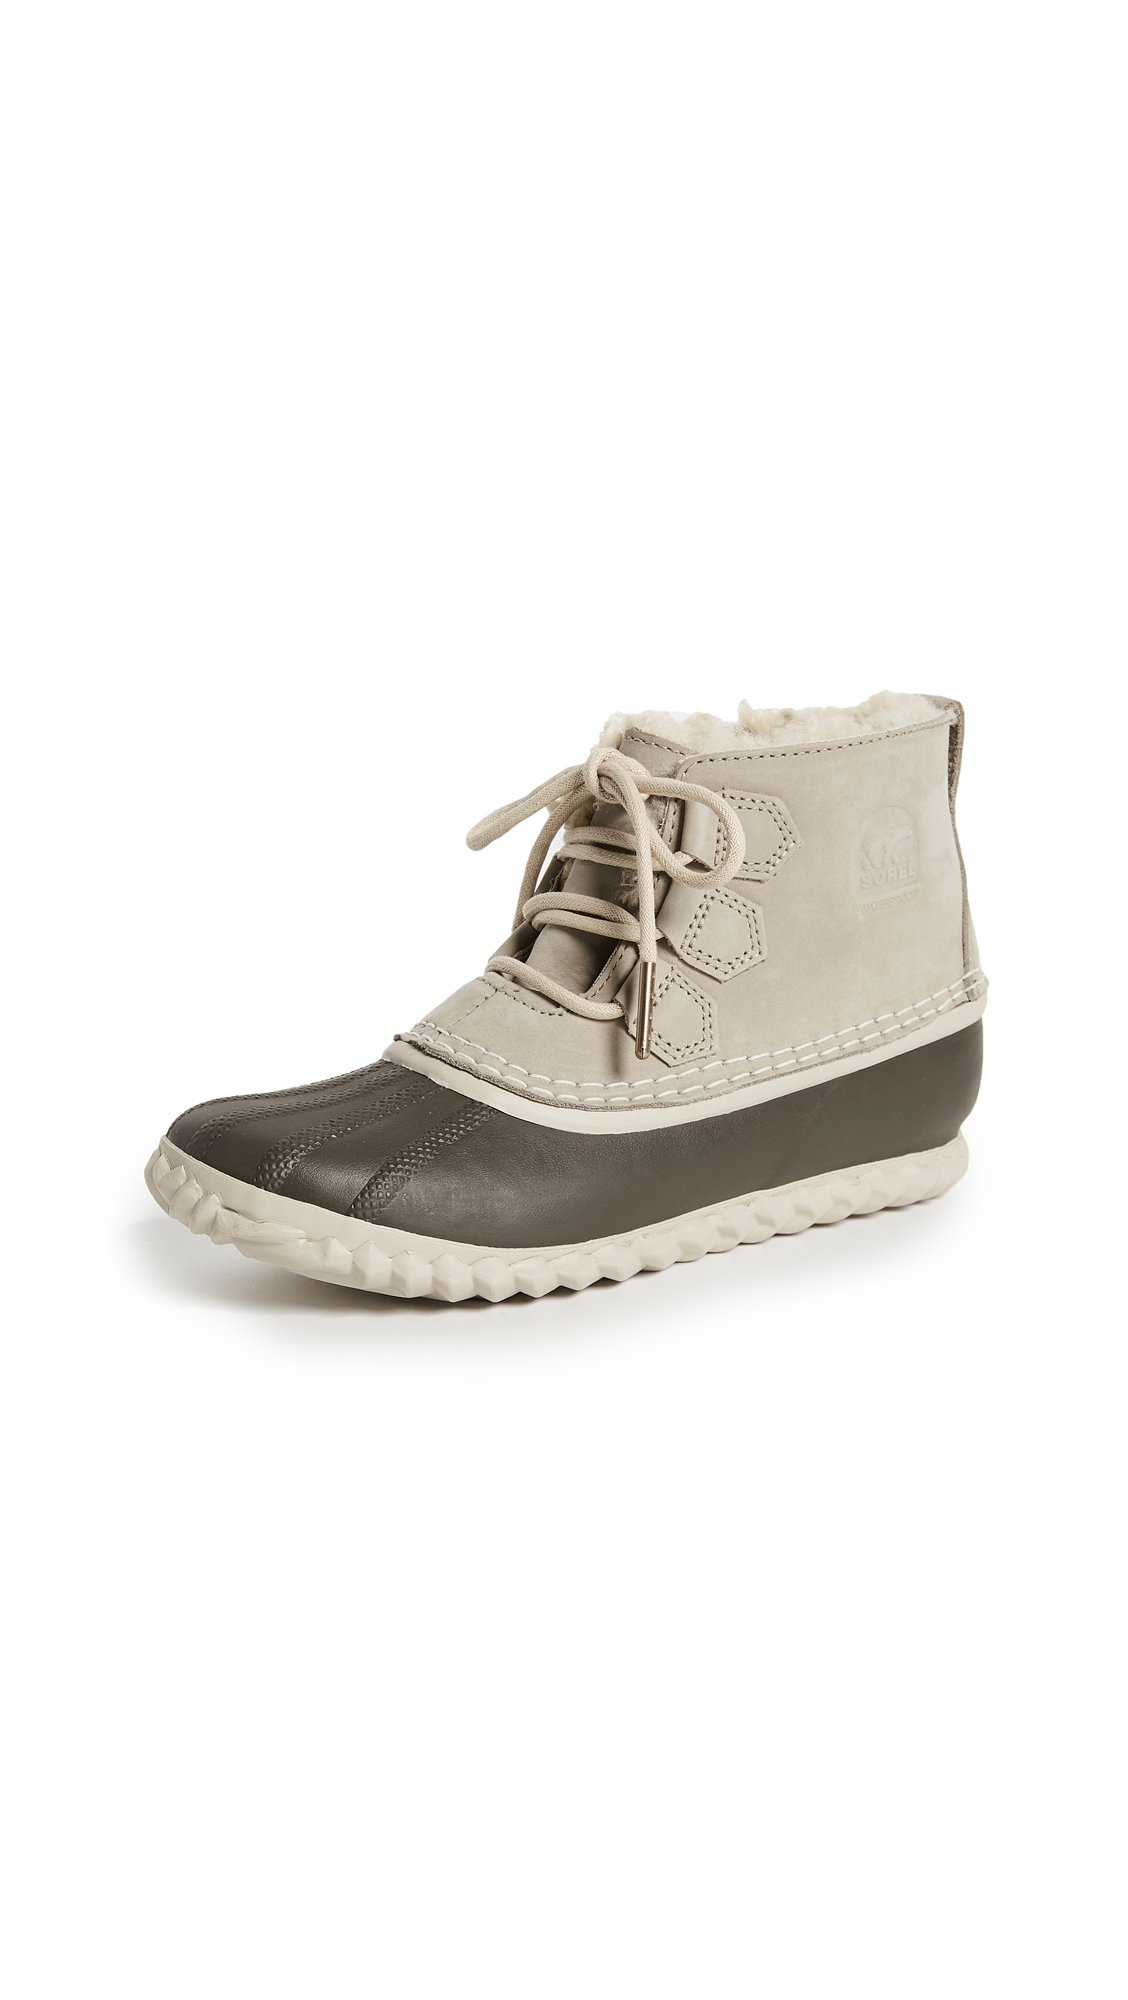 Sorel Women's Out 'N About Shearling Lux Booties, Ancient Fossil/Mud, 9 B(M) US